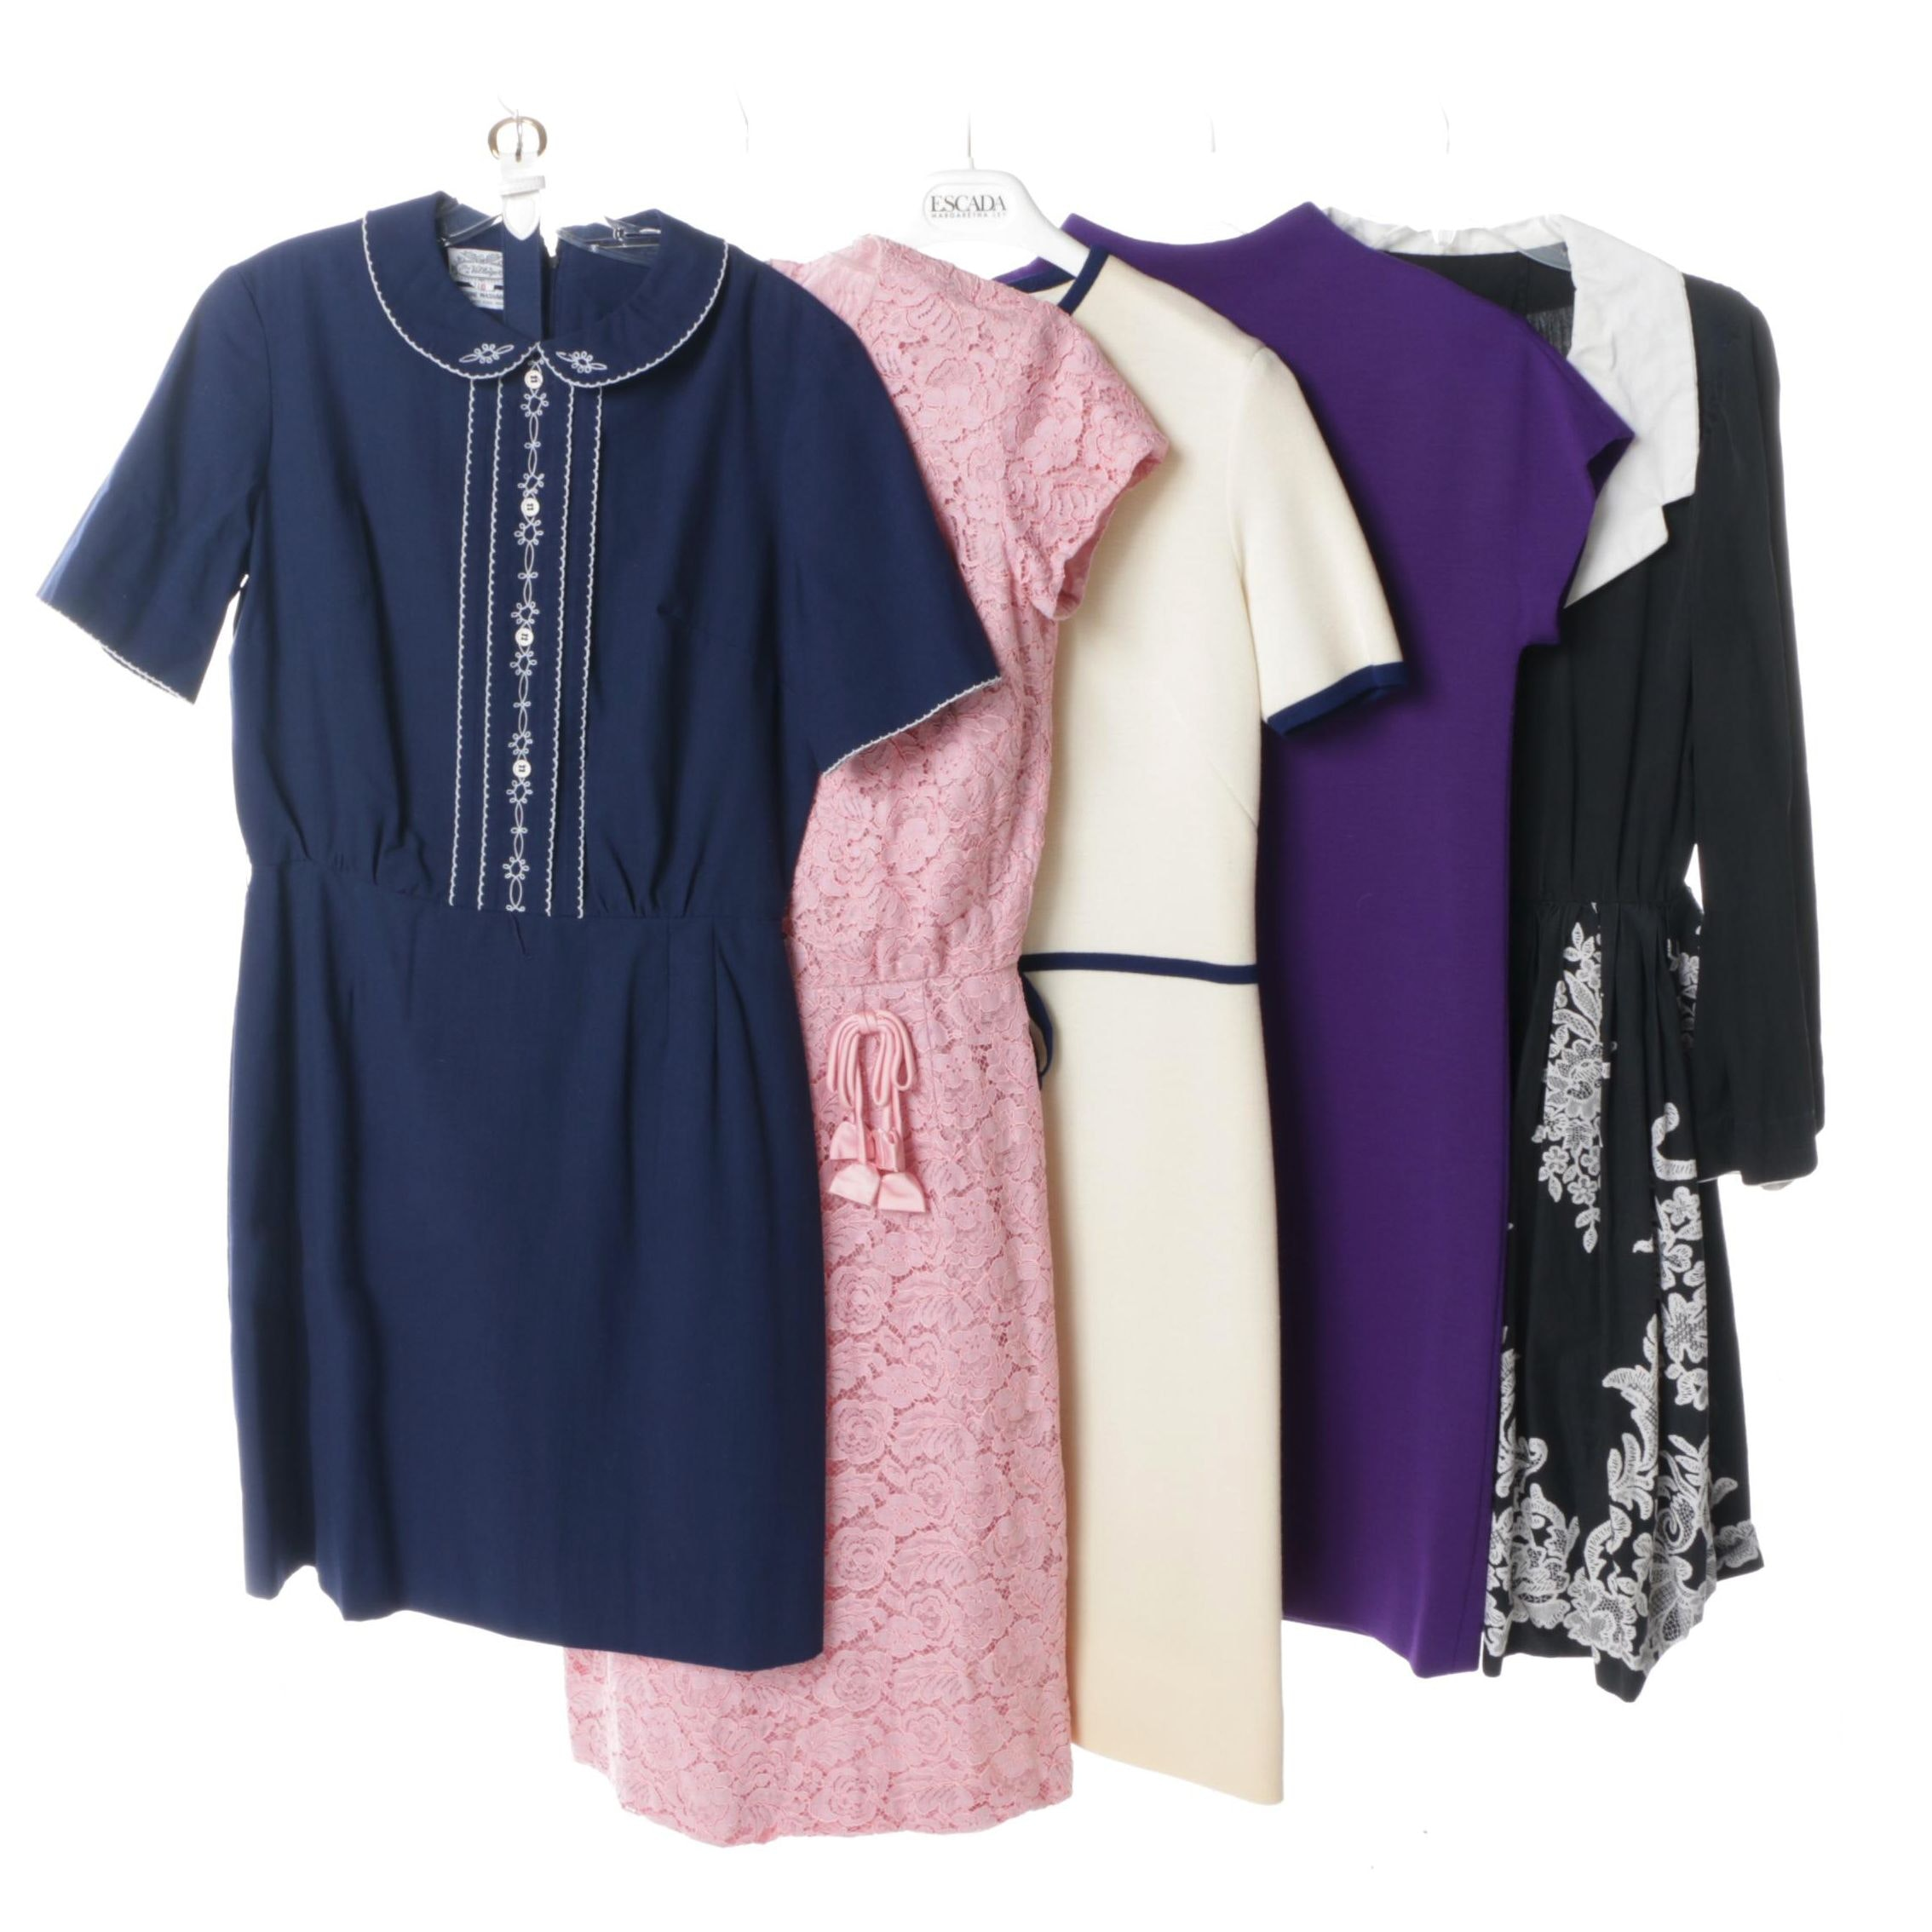 Women's Circa 1960s Vintage Dresses Including The Villager and Nan Leslie